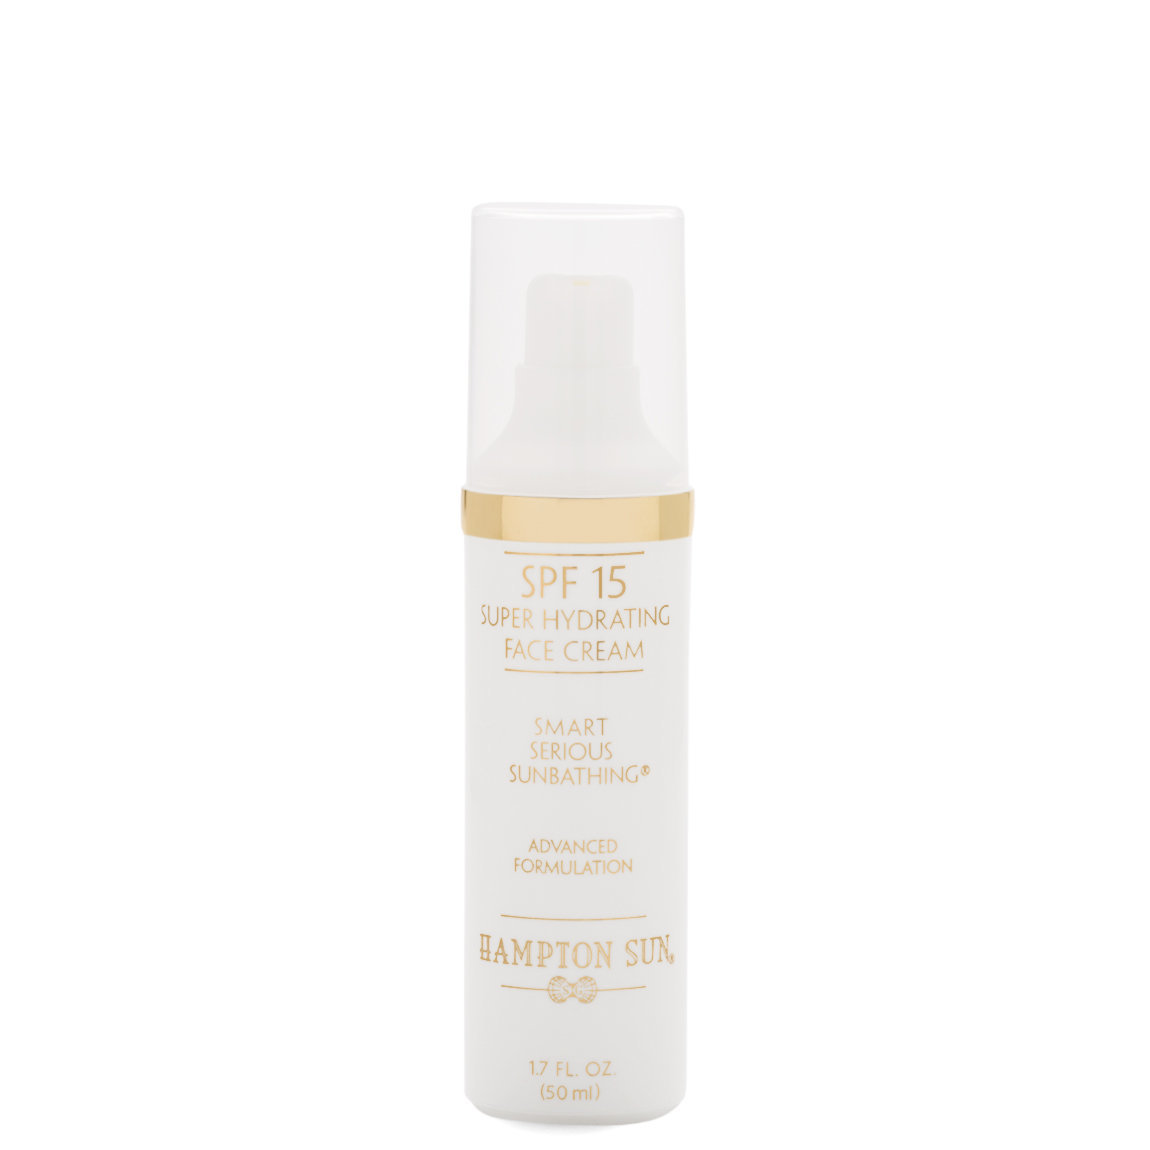 Hampton Sun SPF 15 Super Hydrating Face Cream product smear.